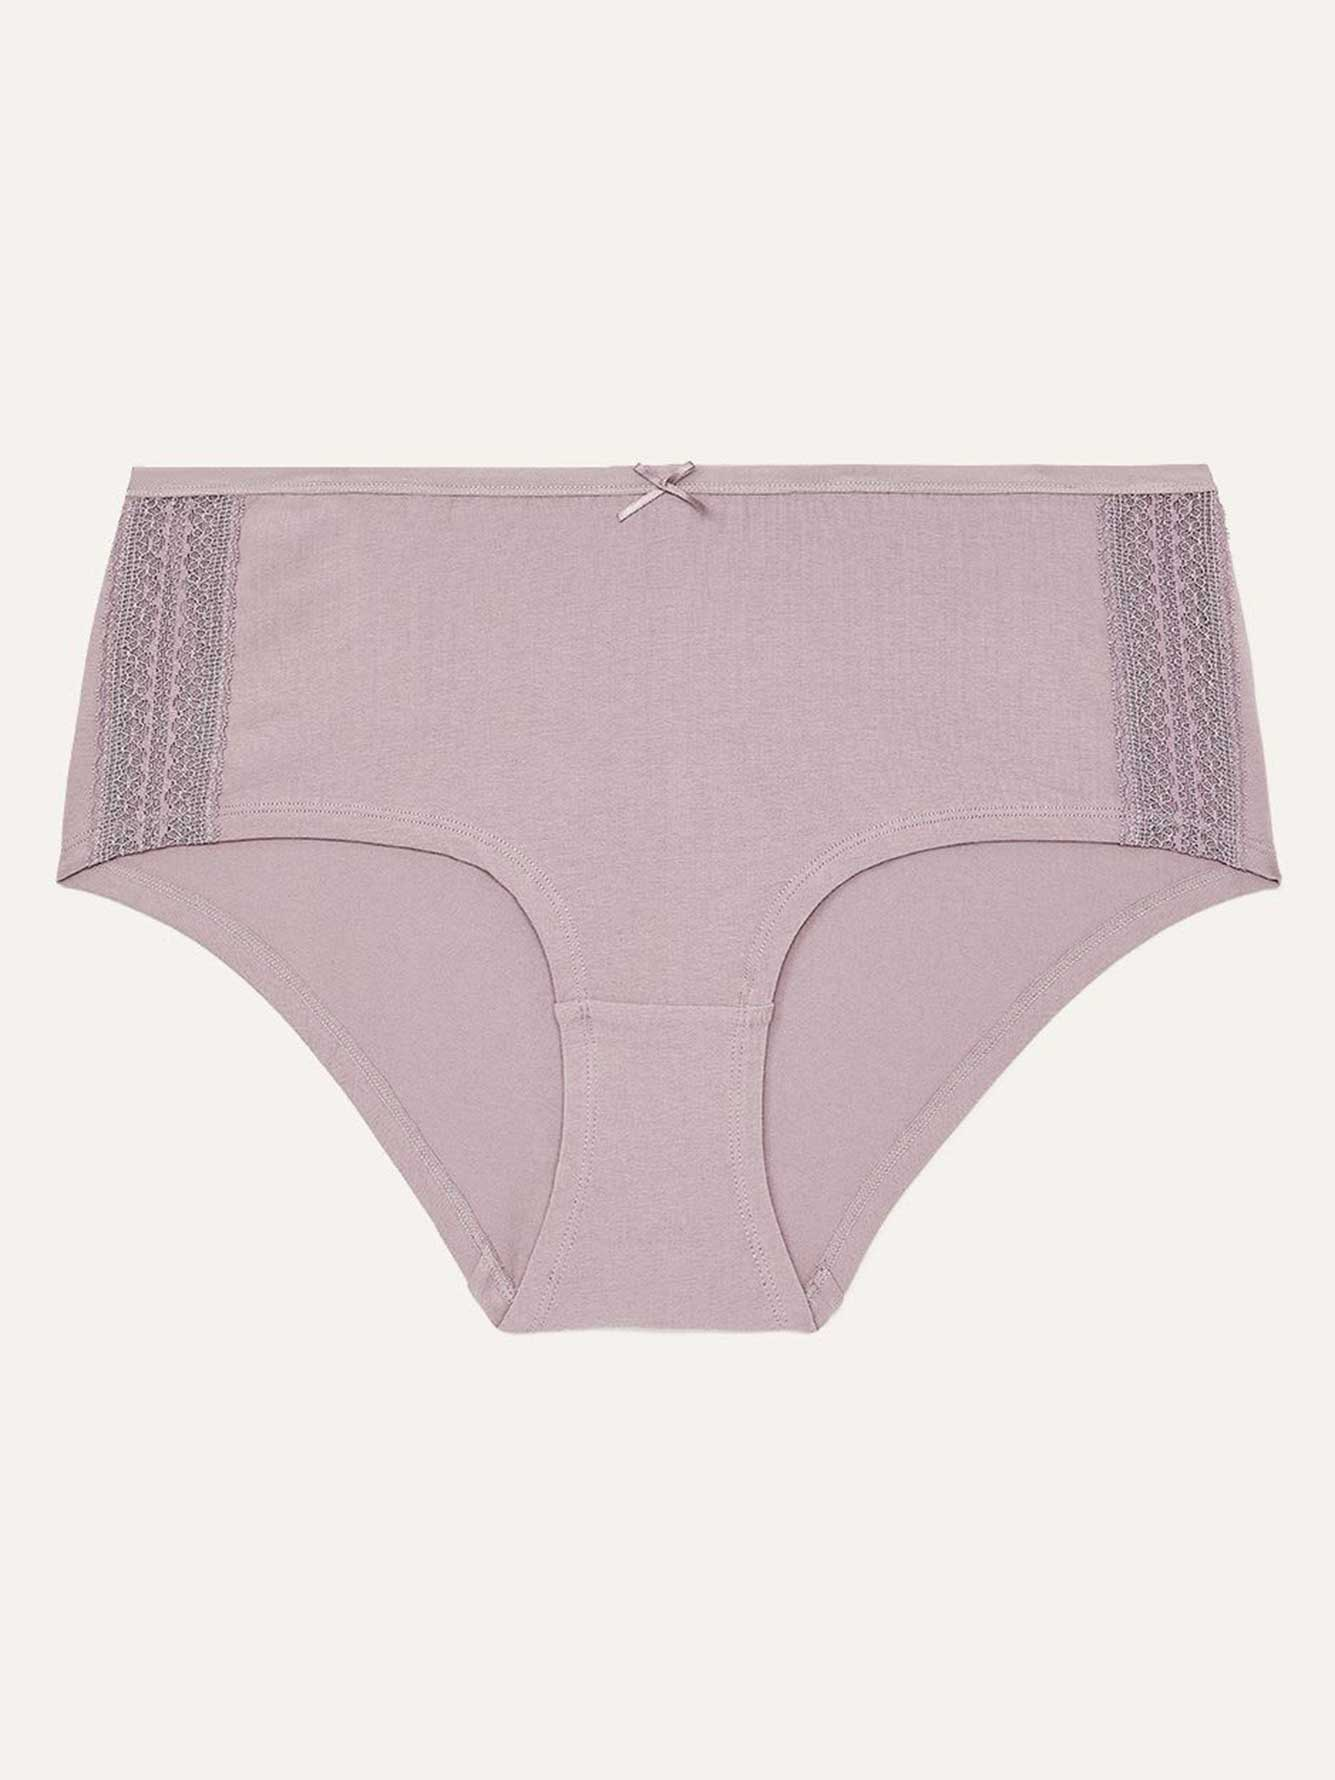 Cotton Boxer with Lace - Déesse Collection